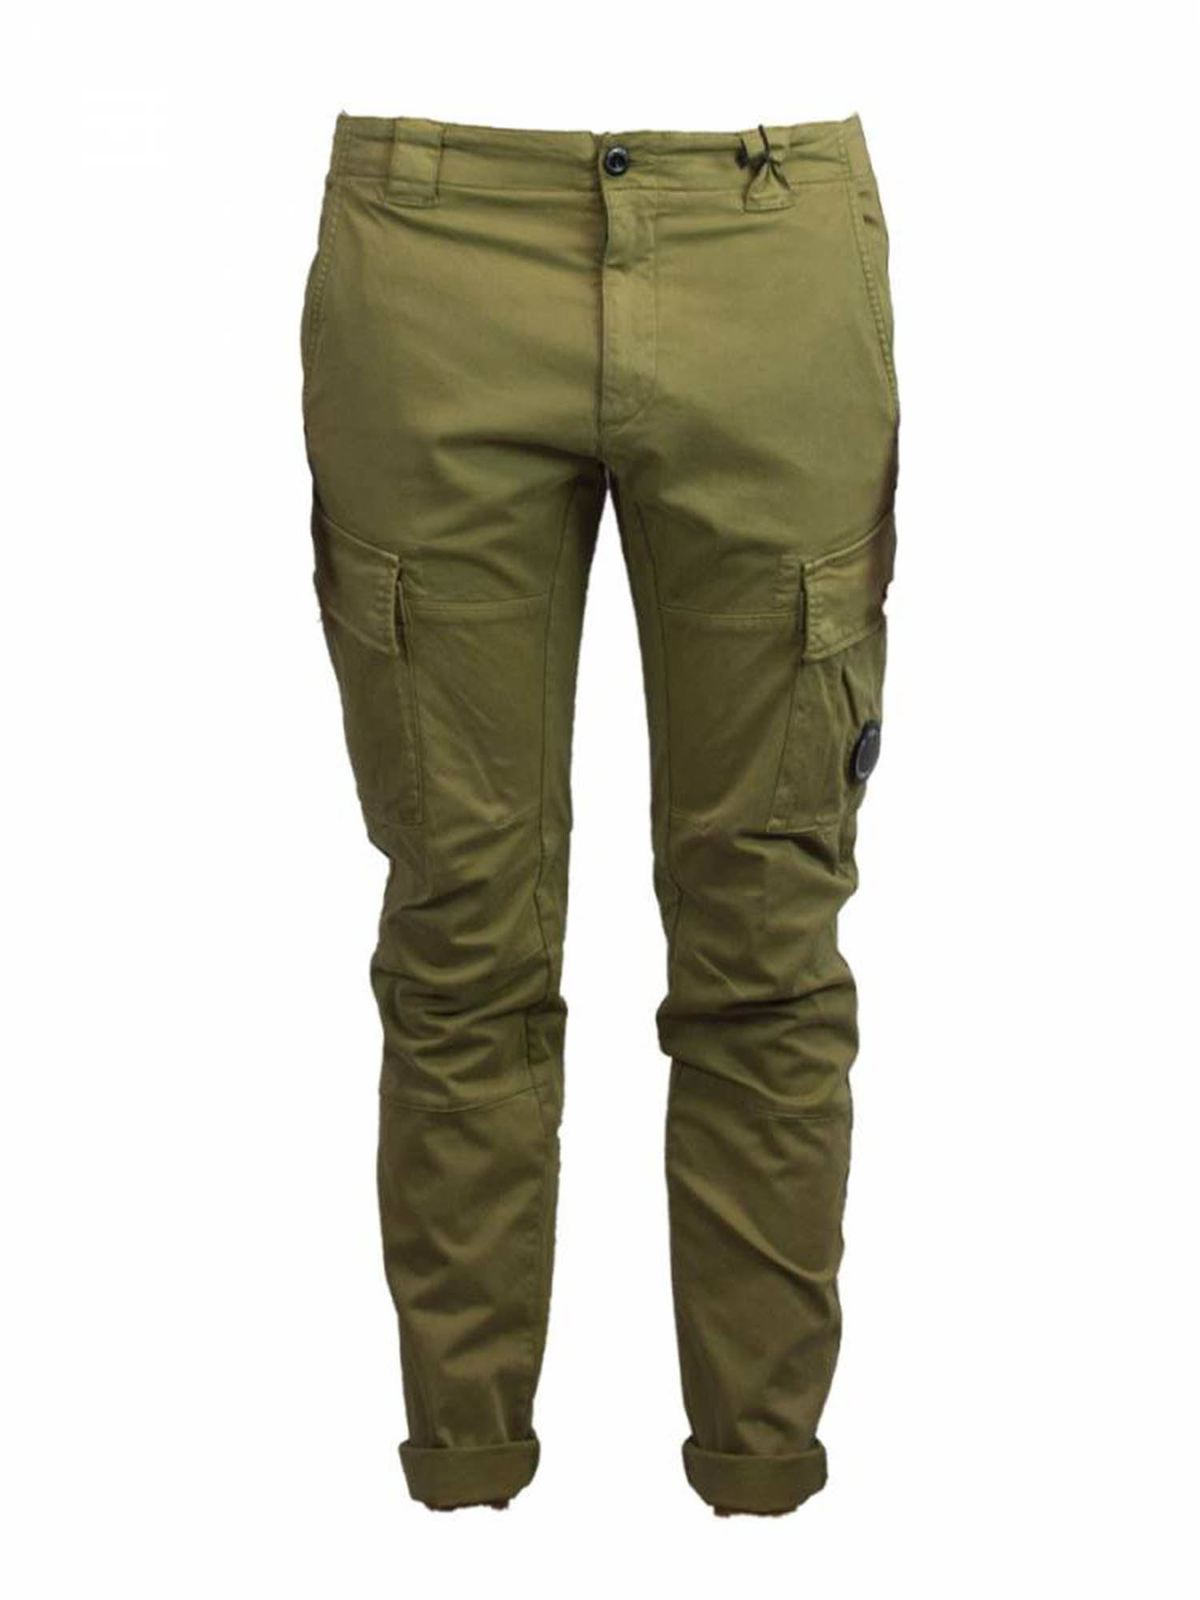 C.P. COMPANY CARGO PANTS IN GREEN